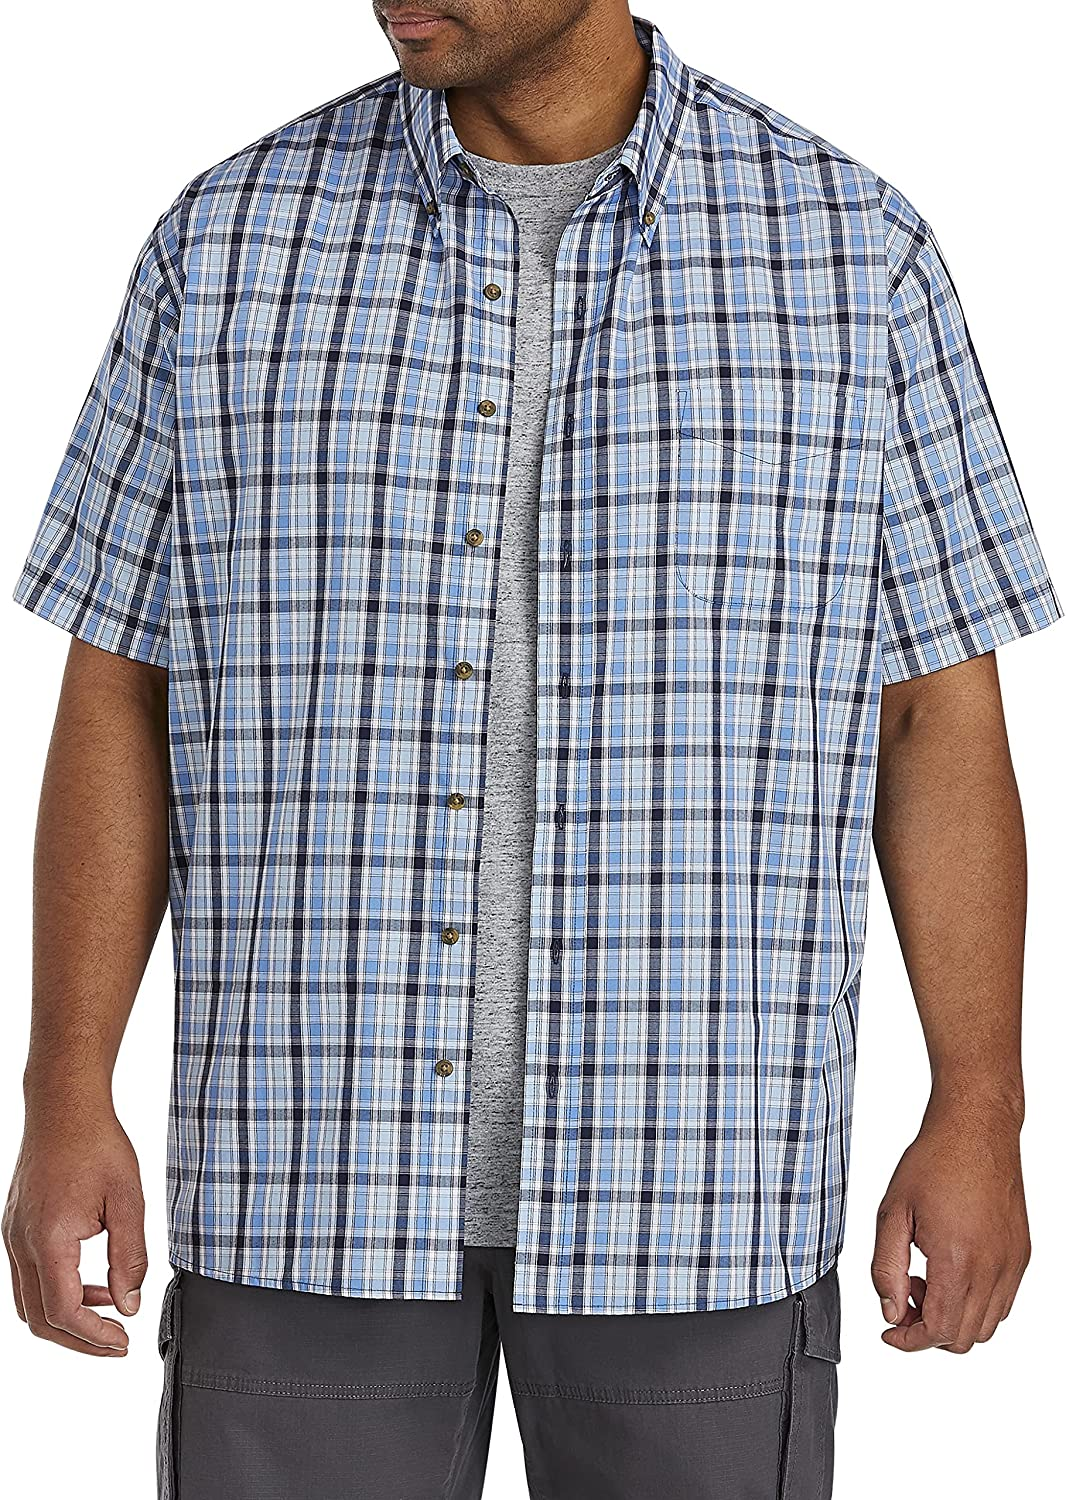 Harbor Bay by DXL Big and Tall Easy-Care Multi Check Sport Shirt, Blue, 1XL